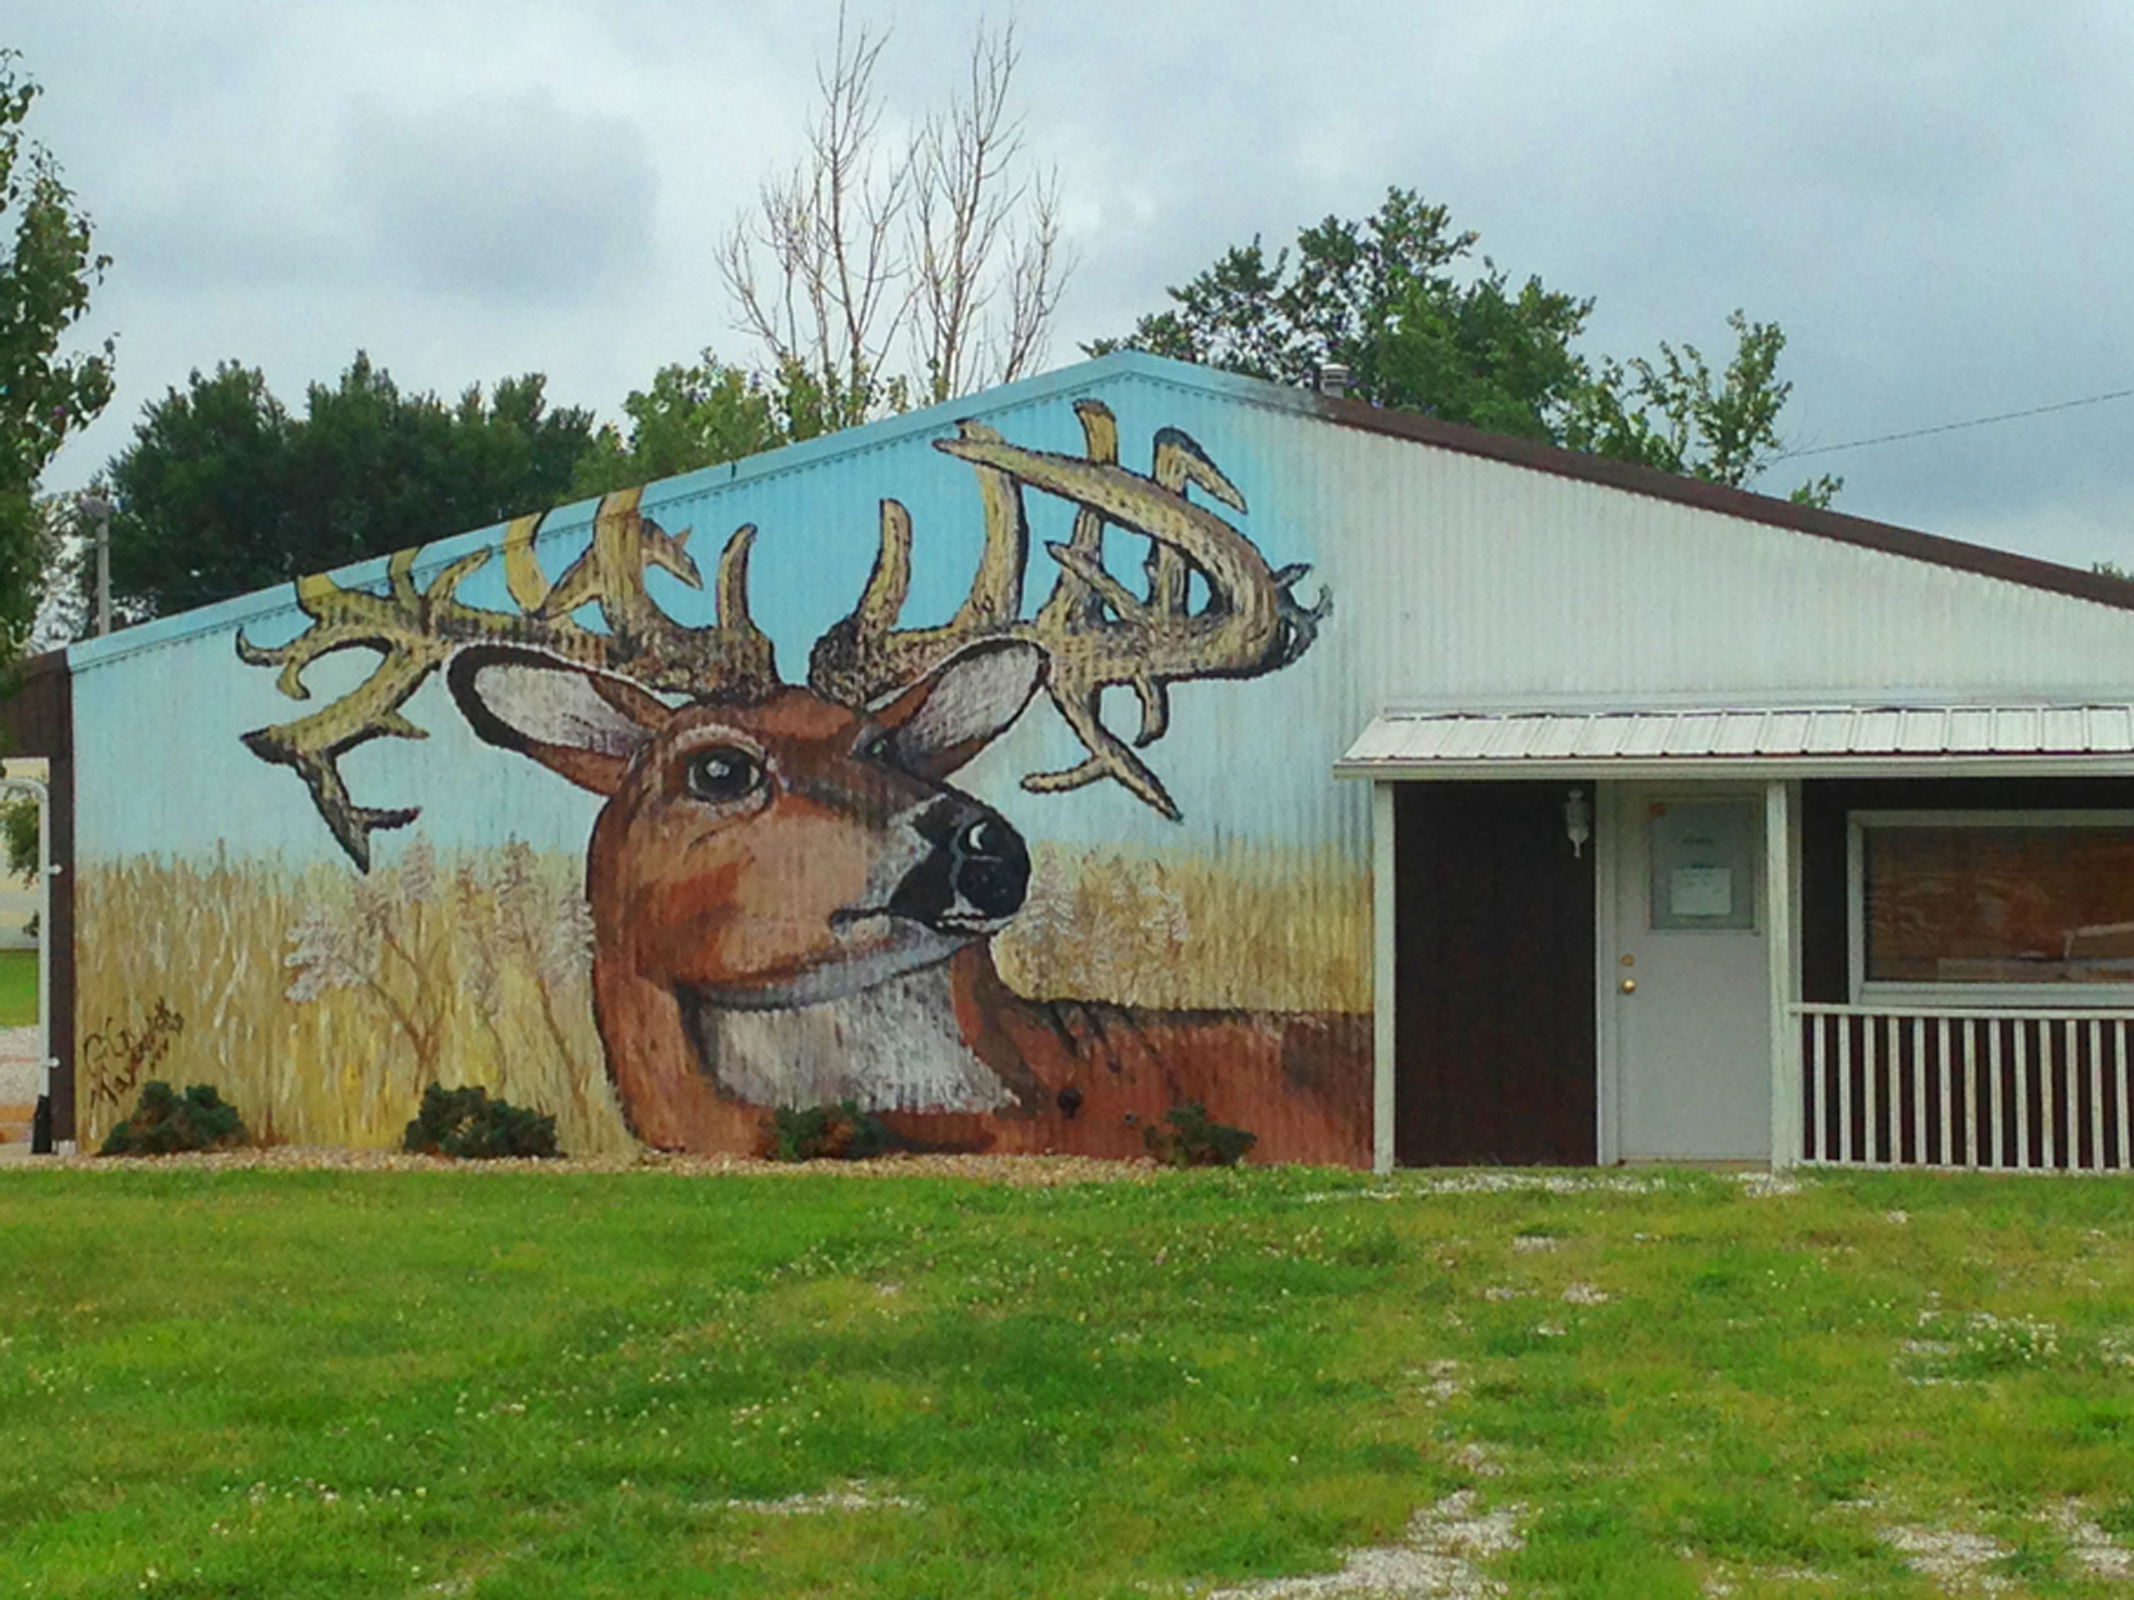 Building mural of deer